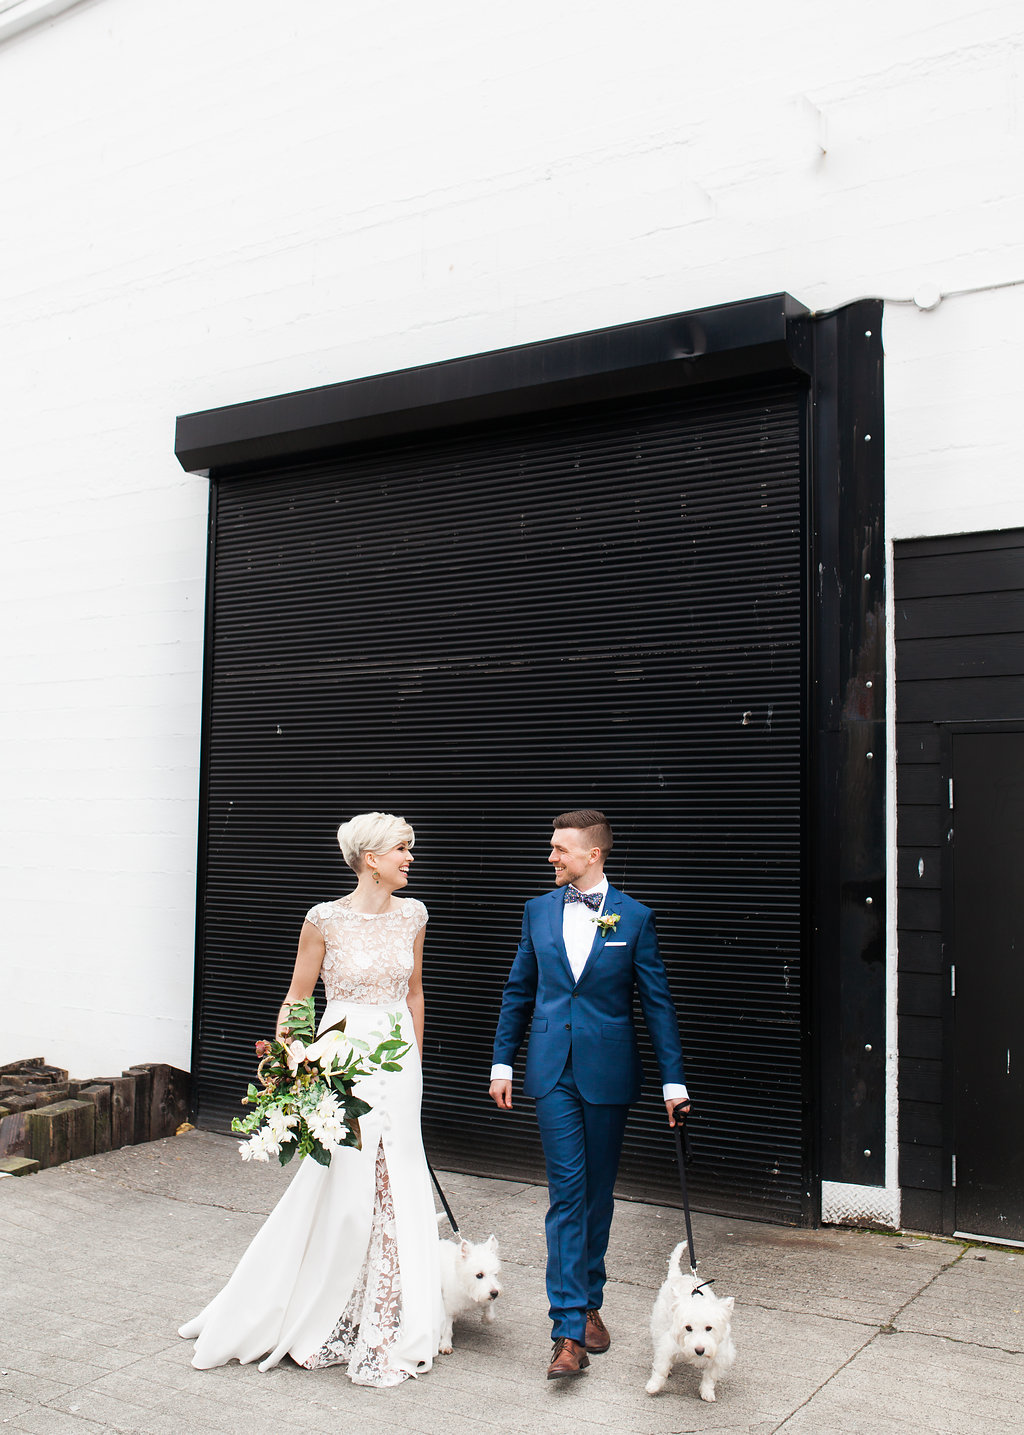 wedding photography - photo by Katt Willson https://ruffledblog.com/stylish-tropical-wedding-inspiration-in-the-pacific-northwest